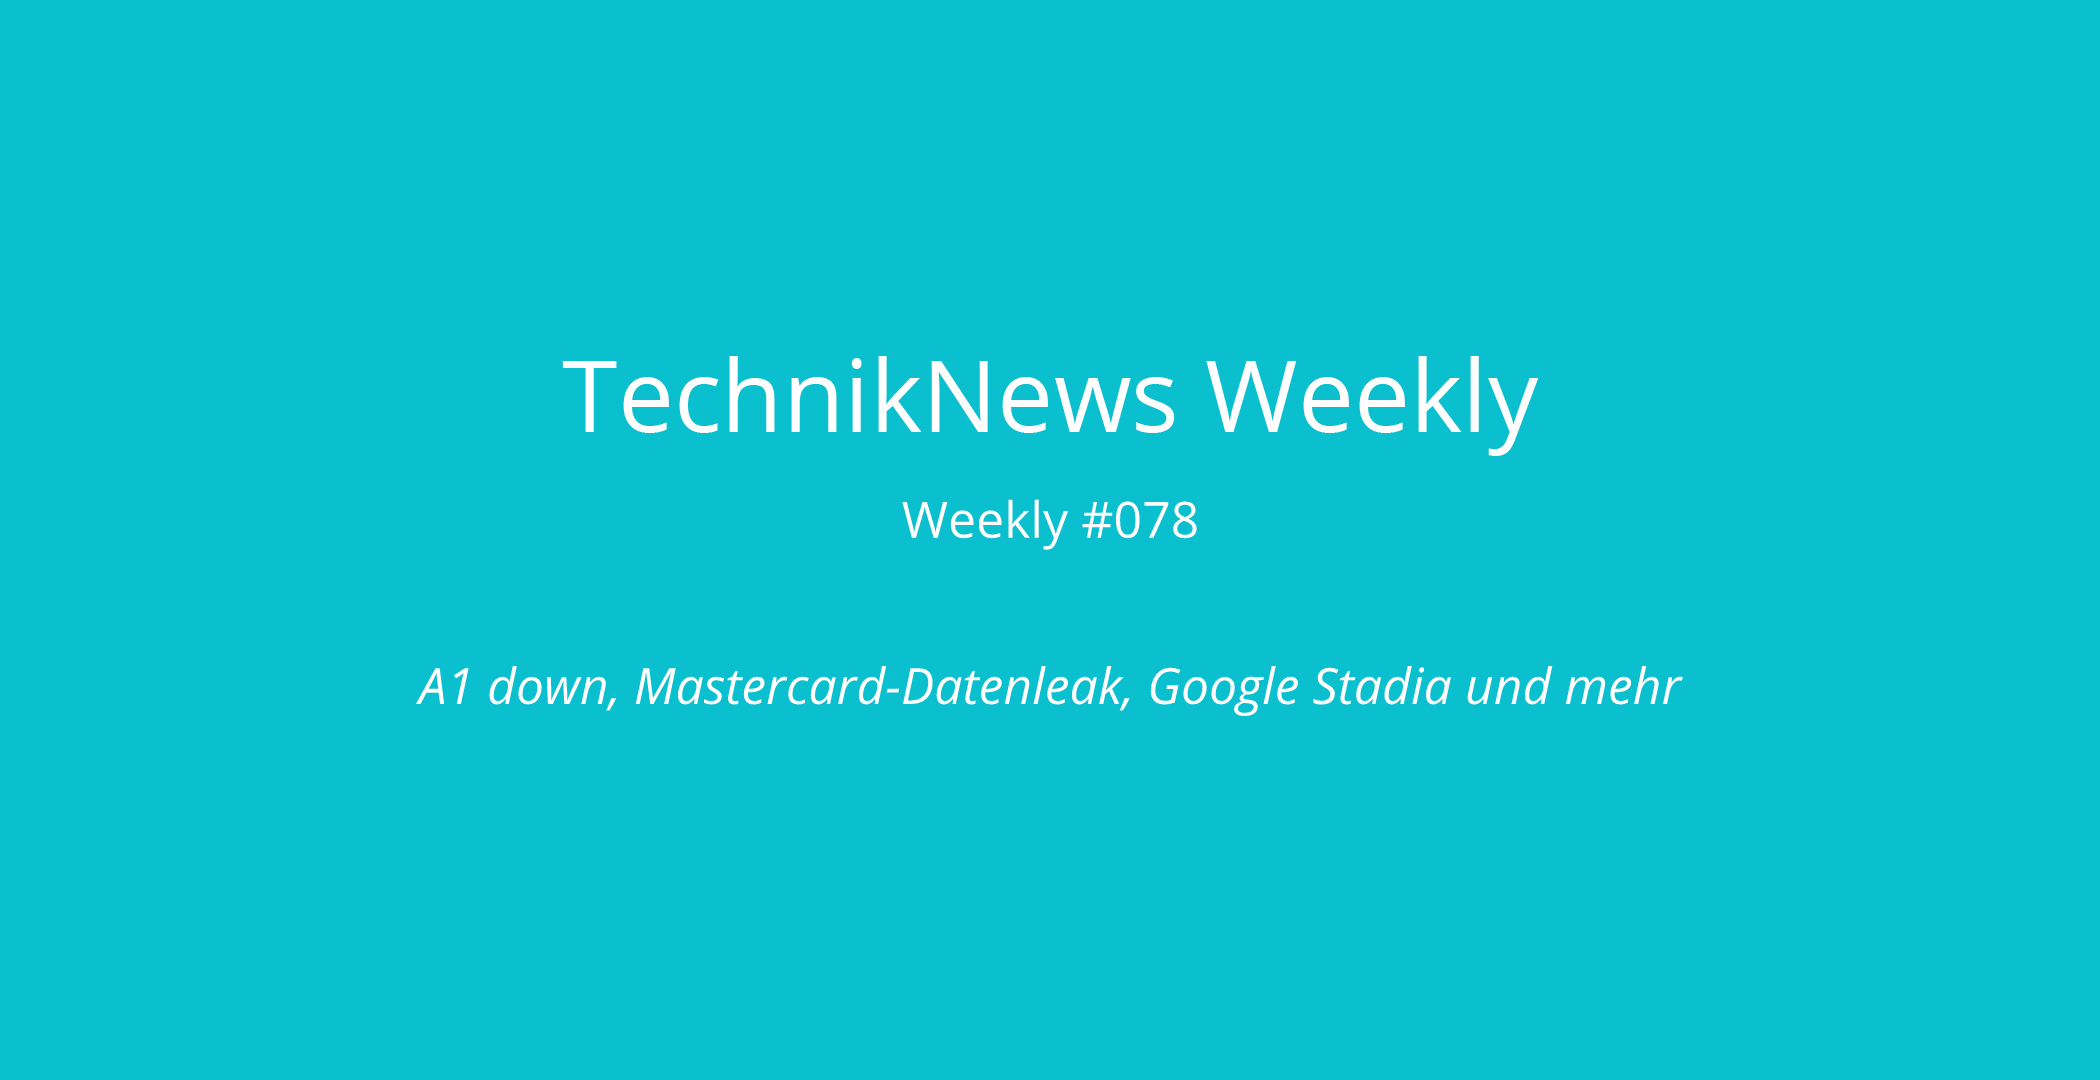 TechnikNews Weekly #078: A1 down, Mastercard-Datenleak, Google Stadia und mehr